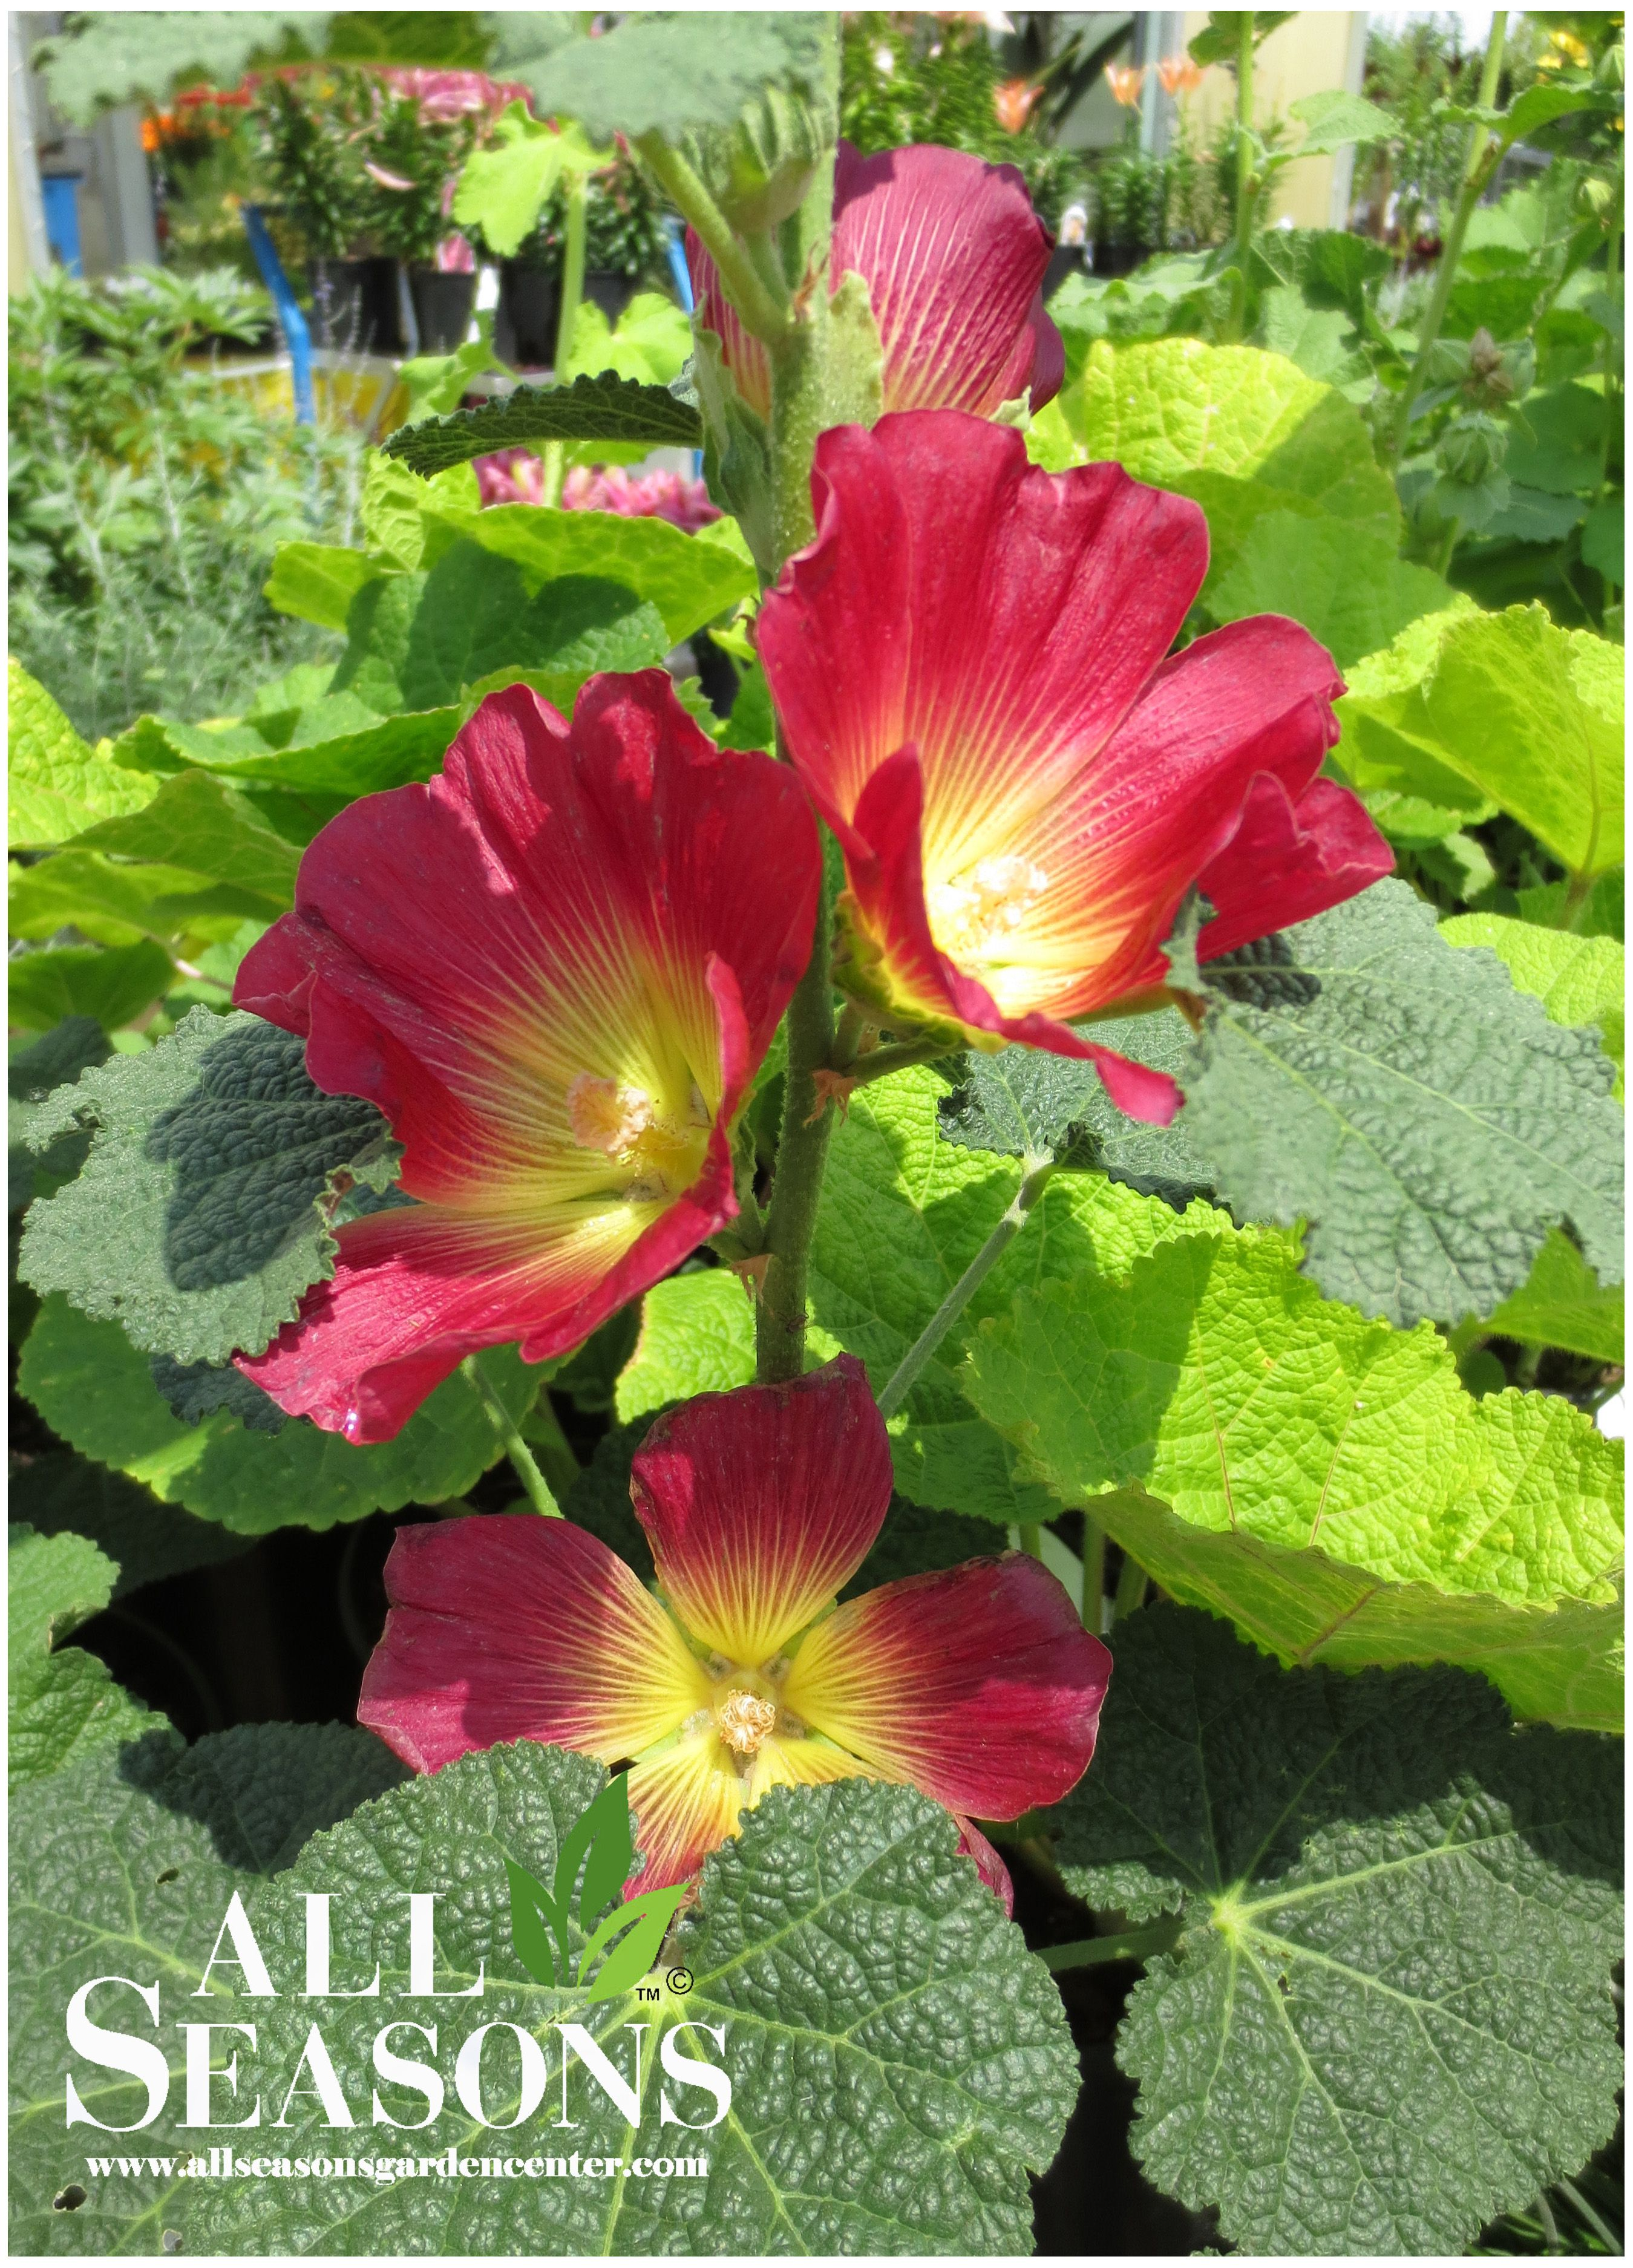 Hollyhocks are a wonderful perennial! The blooms are lovely and the foliage is interesting. They make a great addition to any garden.